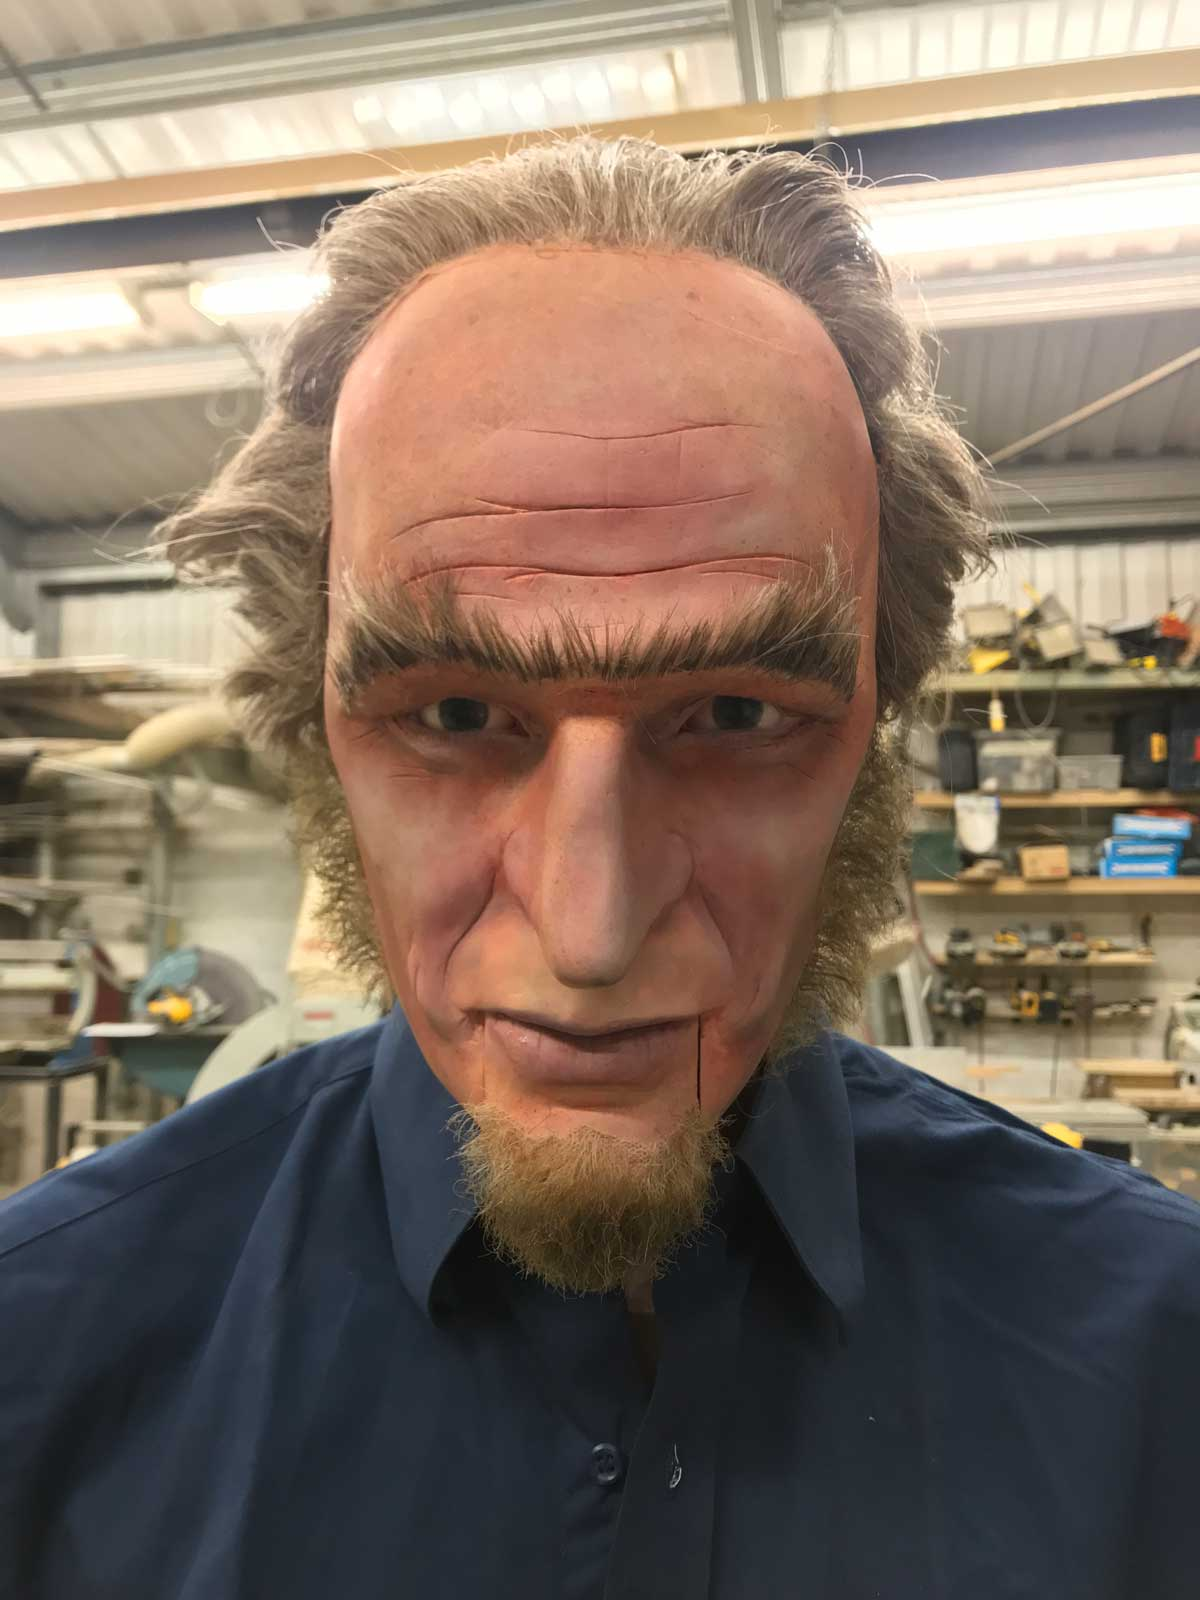 Model Head Prop, Count Olaf for Netflix A Series of Unfortunate Events